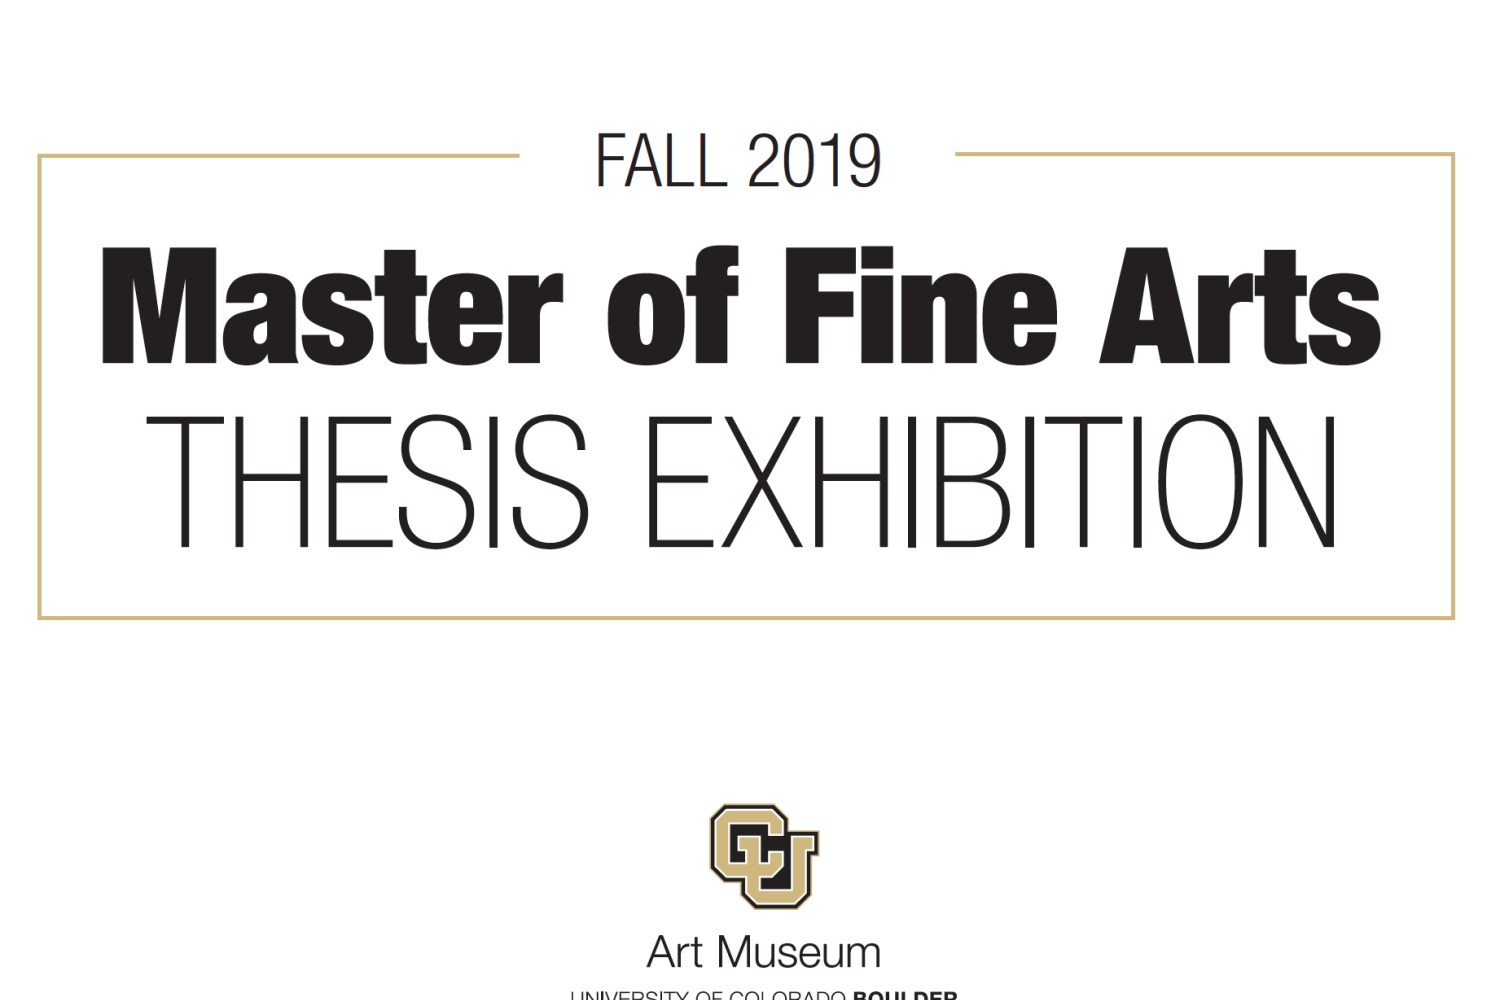 Graphic image of that that reads Fall 2019 Master of Fine Arts thesis exhibition and the gold and black CU Art Museum